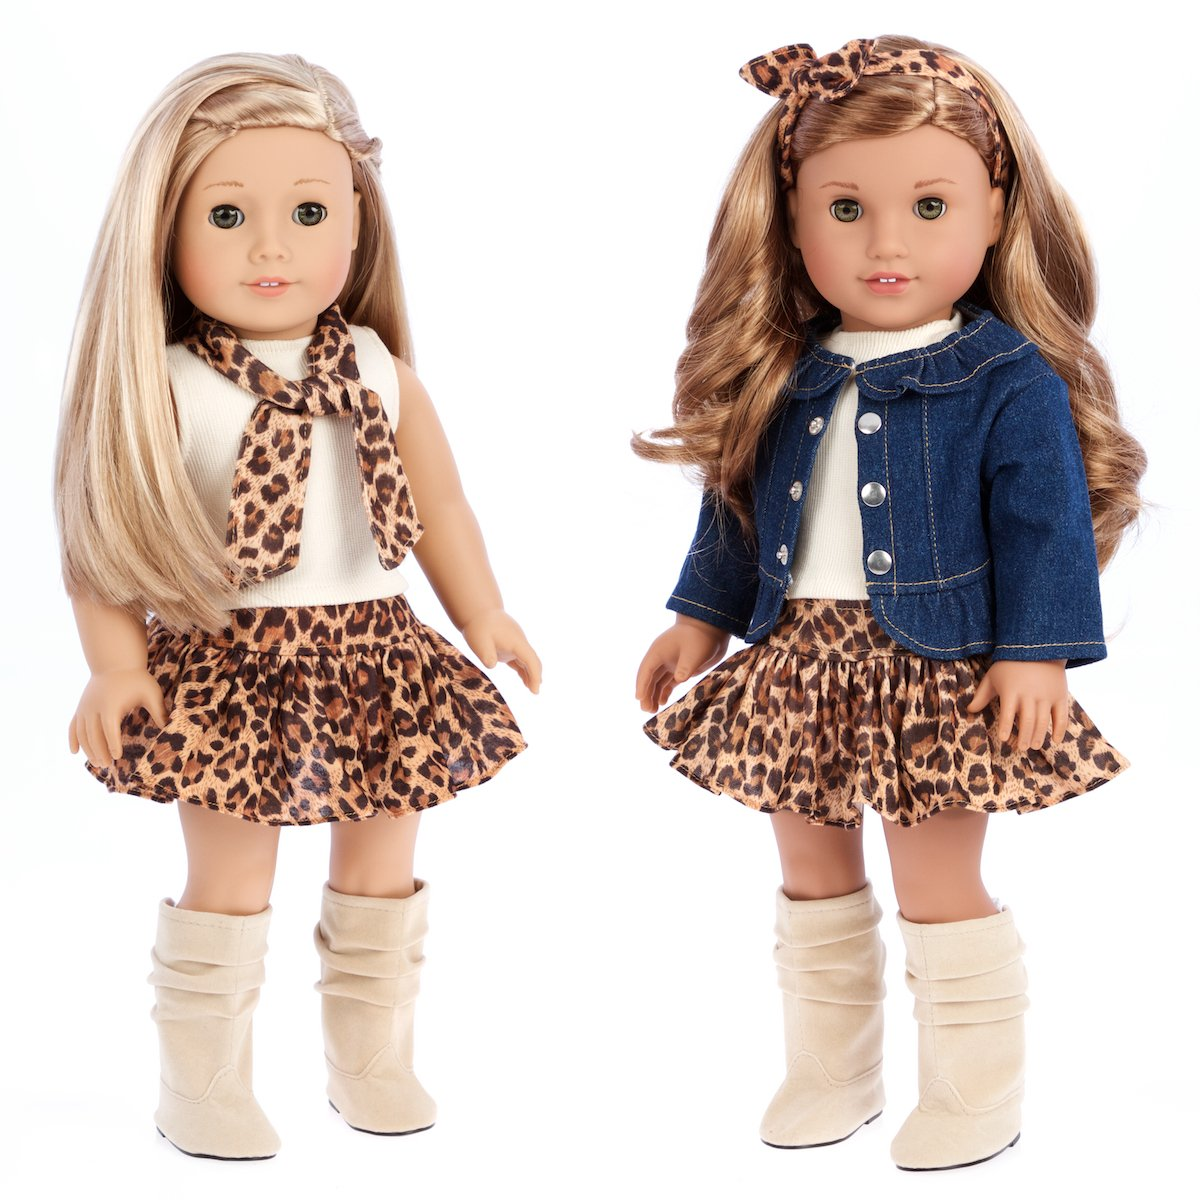 DreamWorld Collections - Adventure - 5 Piece Outfit - Jeans Jacket, Ivory Tank Top, Skirt, Scarf and Boots - Clothes Fits 18 Inch American Girl Doll (Doll Not Included) DWC-1240